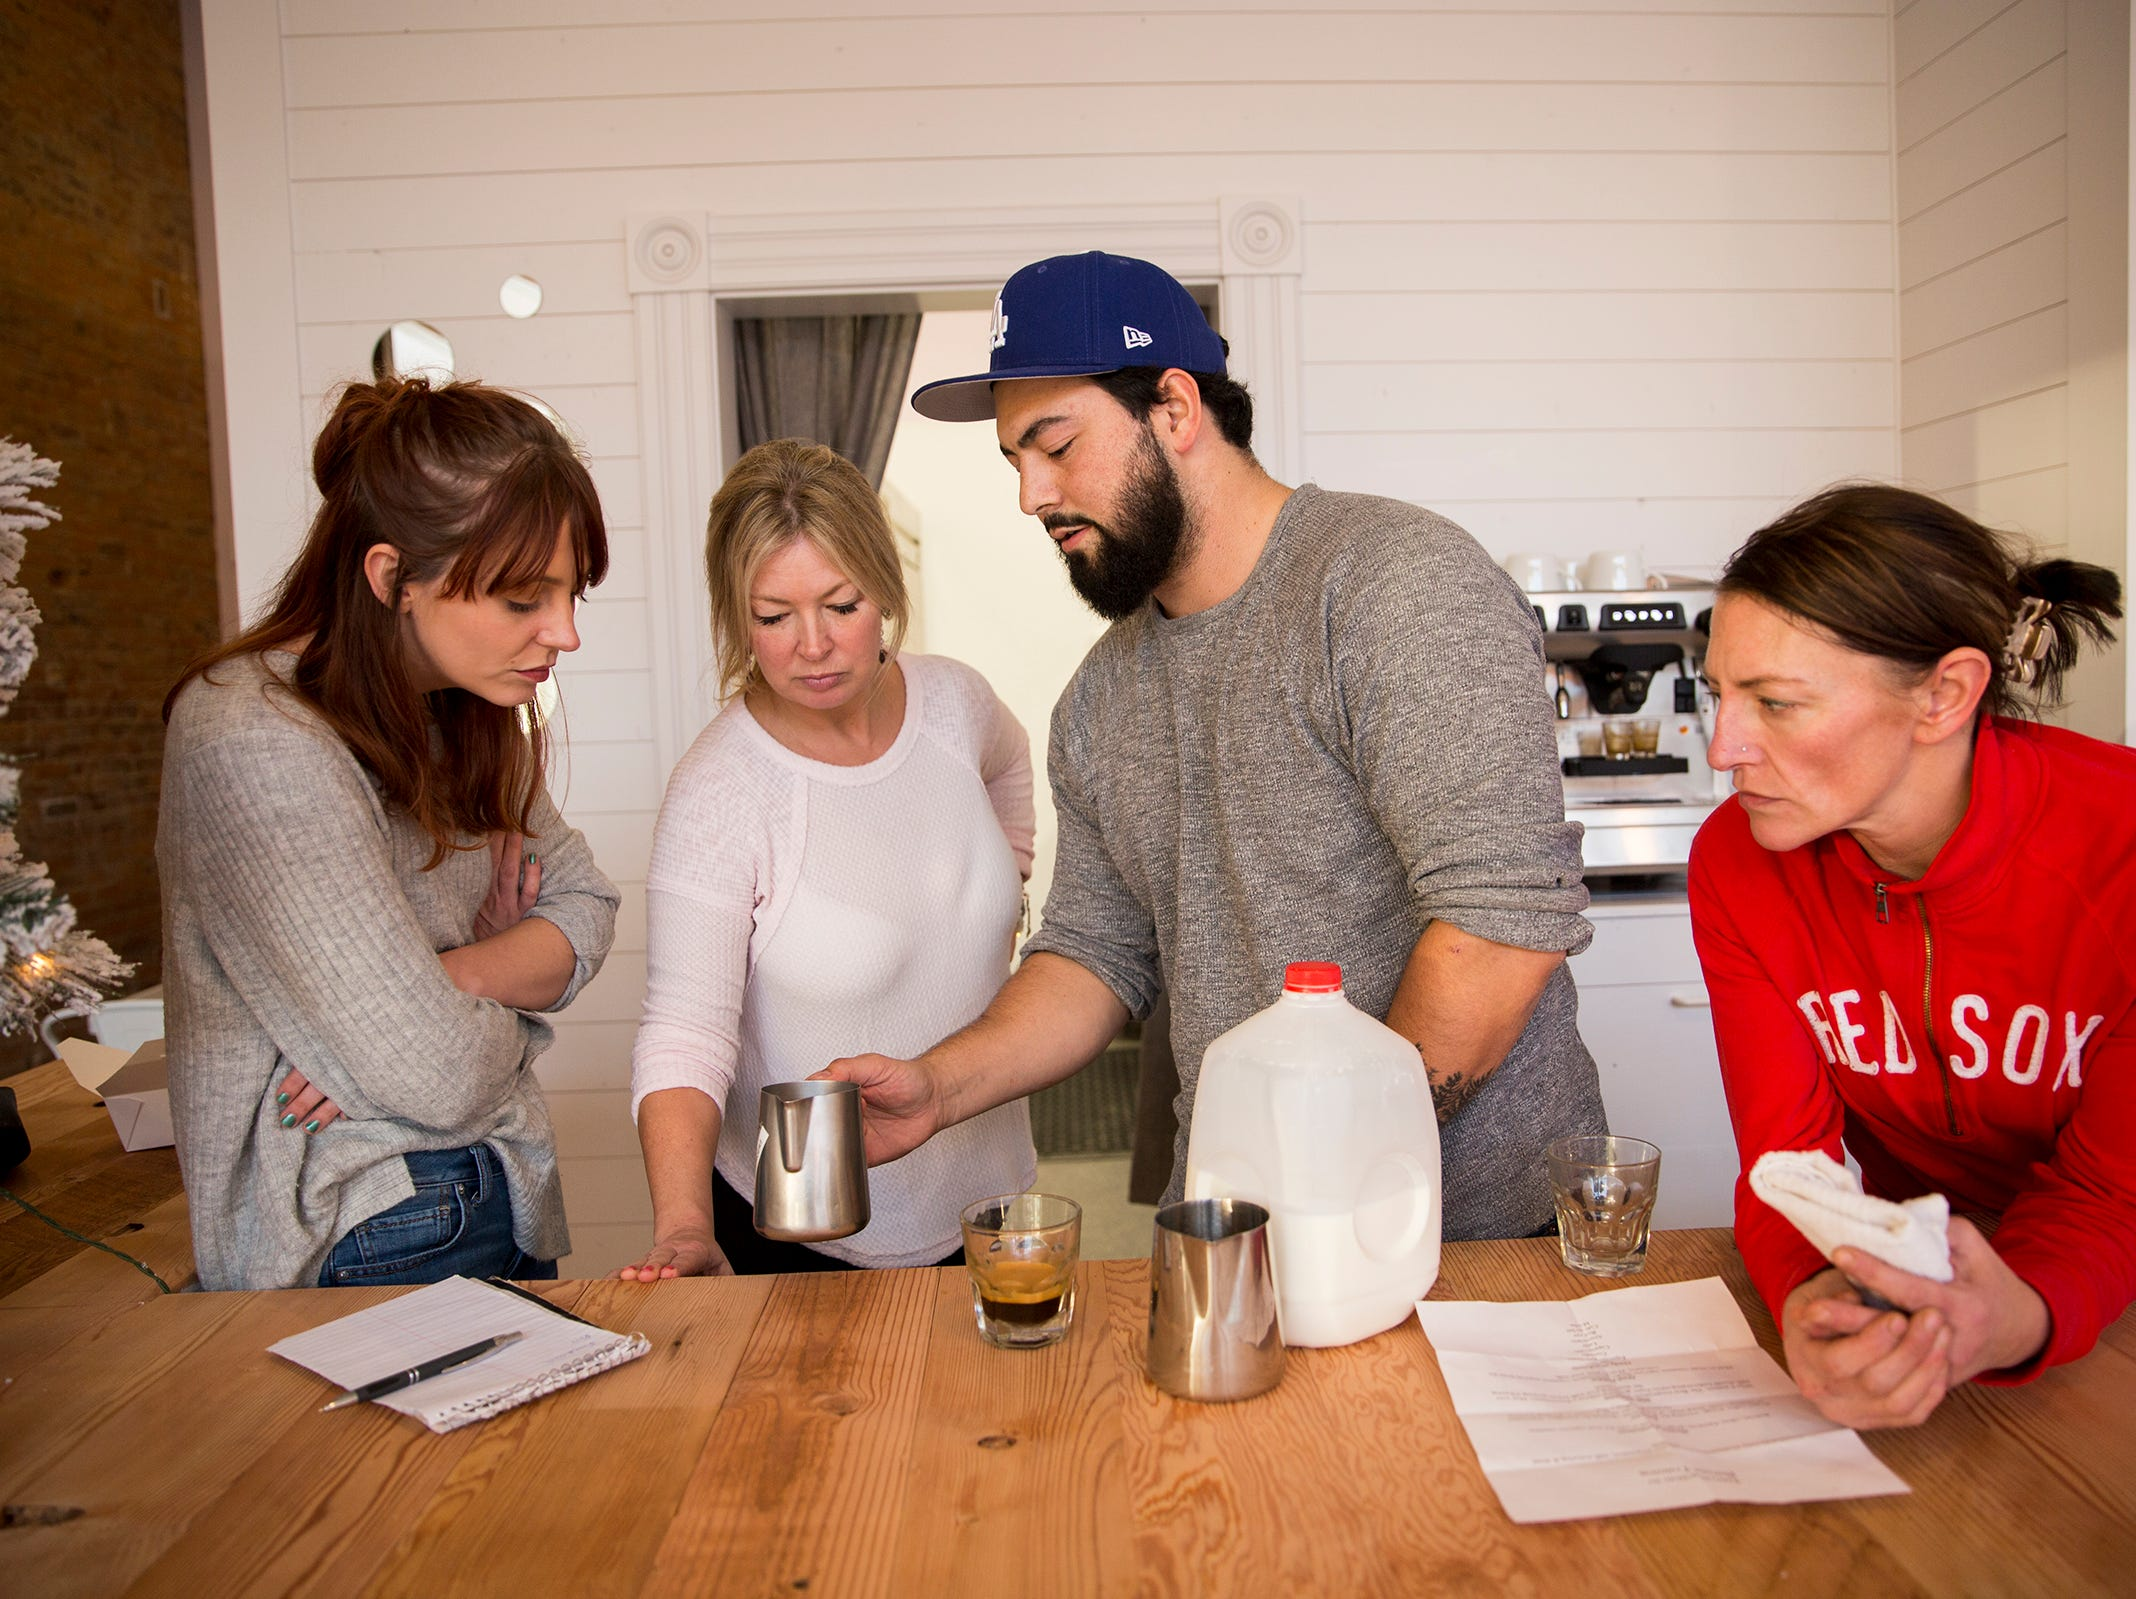 Server Mara Bivins, owner Dana Heuberger and chef Megan Brady learn how to make espresso-based drinks from barista trainer Brandon Sanders at Jubilee Champagne & Dessert Bar in Independence on Tuesday, Dec. 19, 2018.